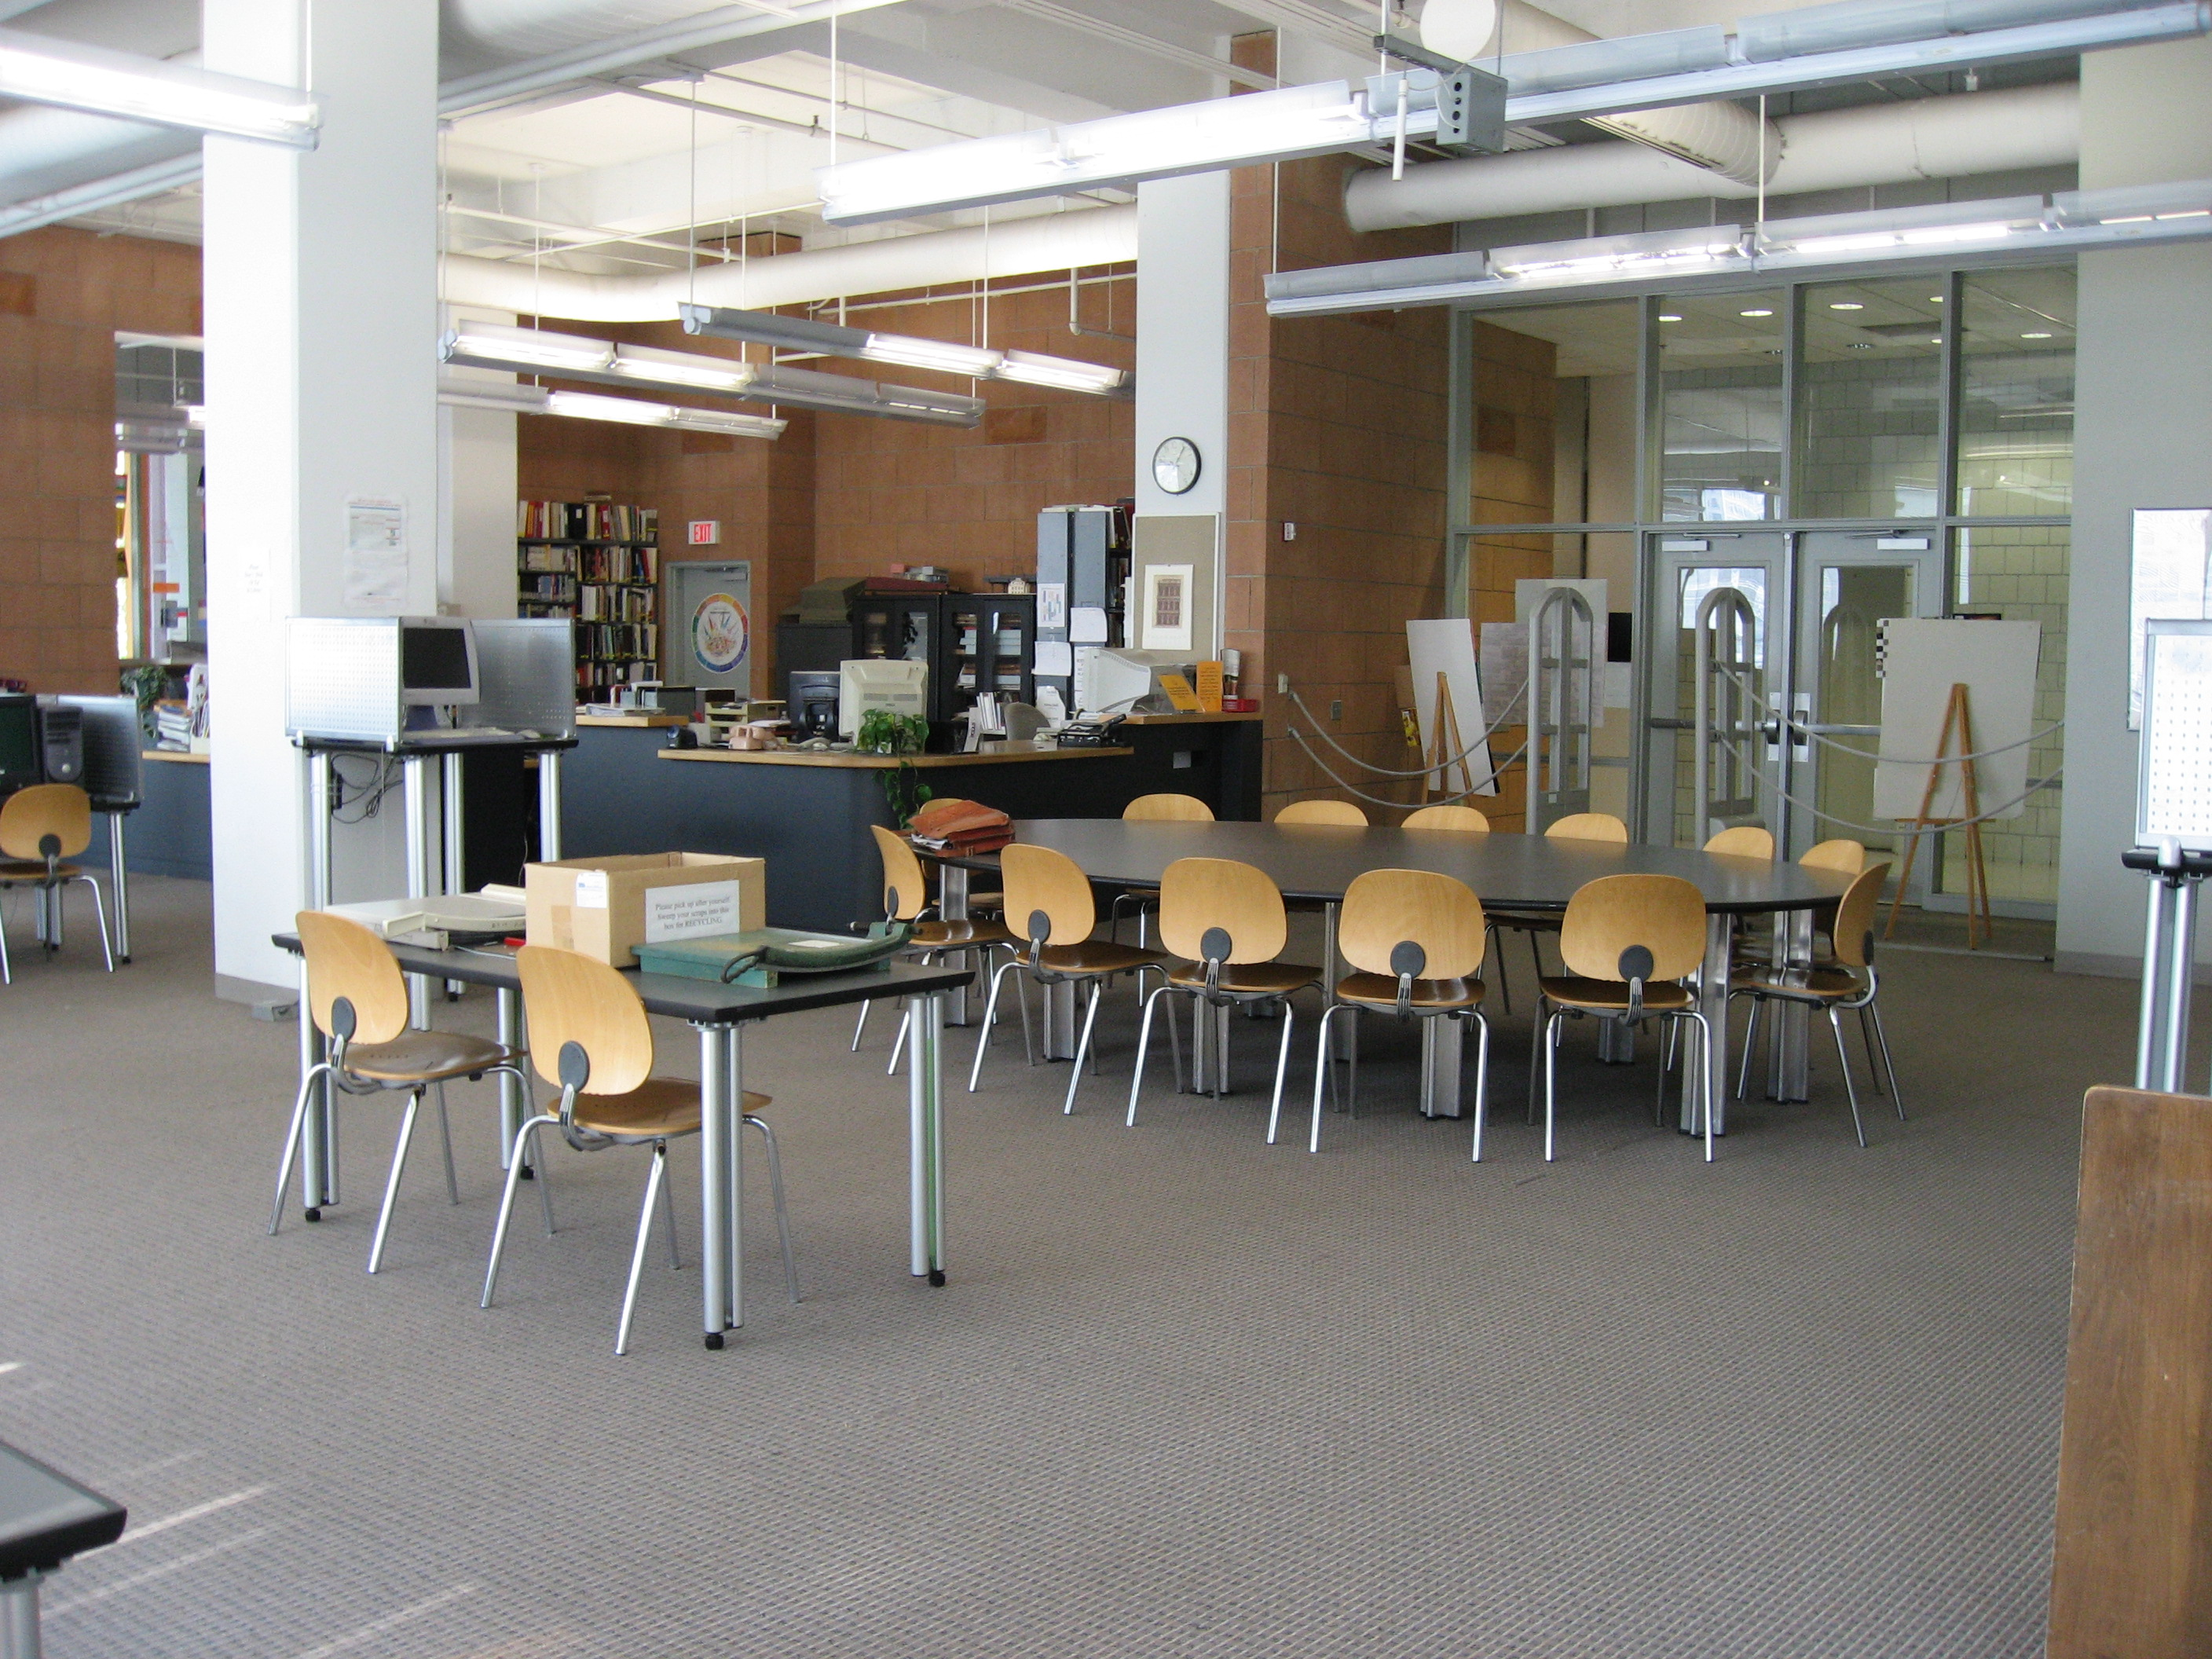 circulation desk and seating area